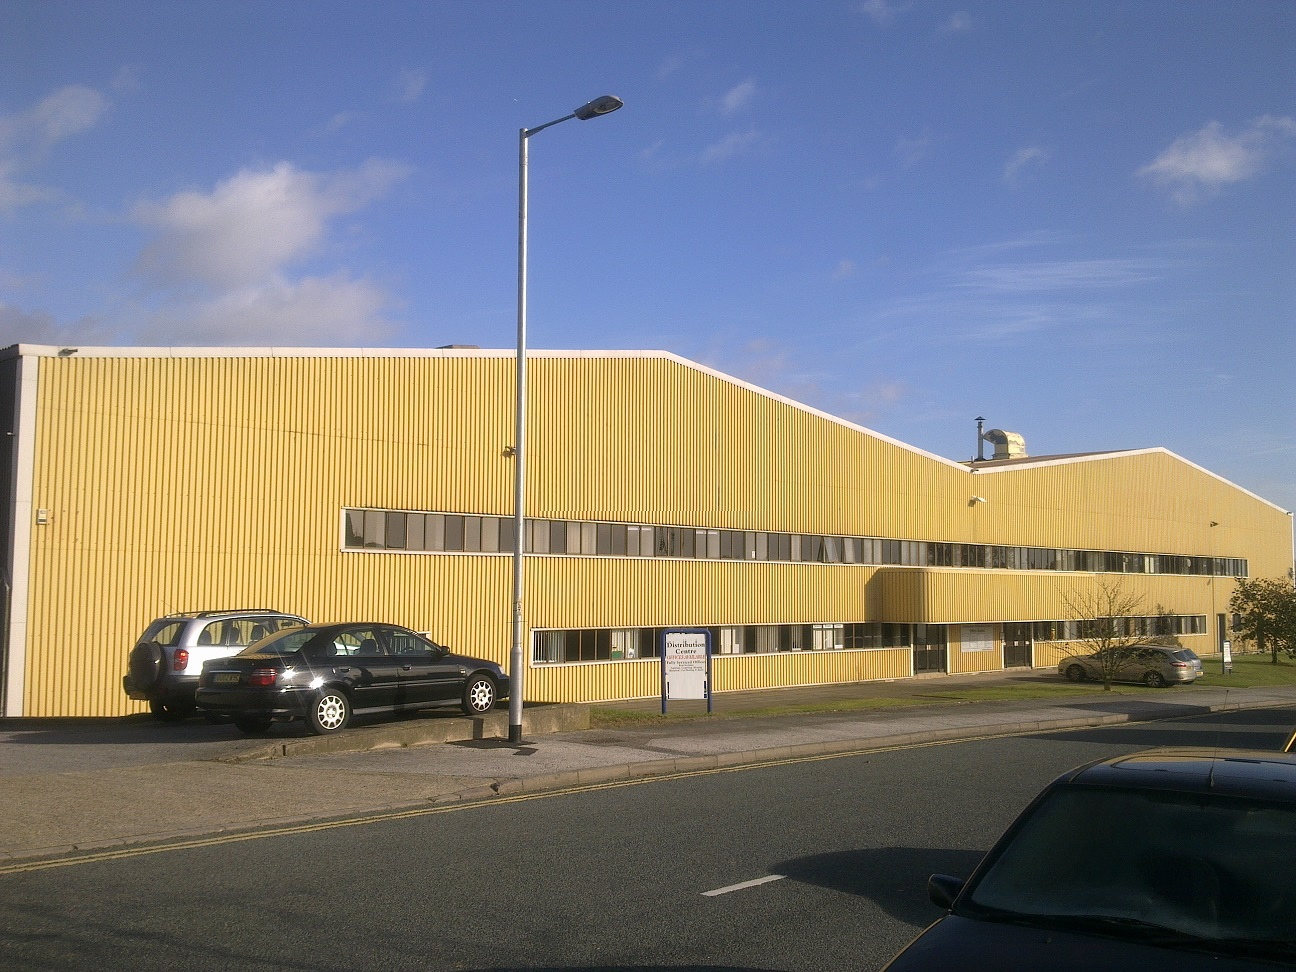 St Vincent Operations - Whitehouse Distribution Centre - Whitehouse Road, IP1 - Ipswich